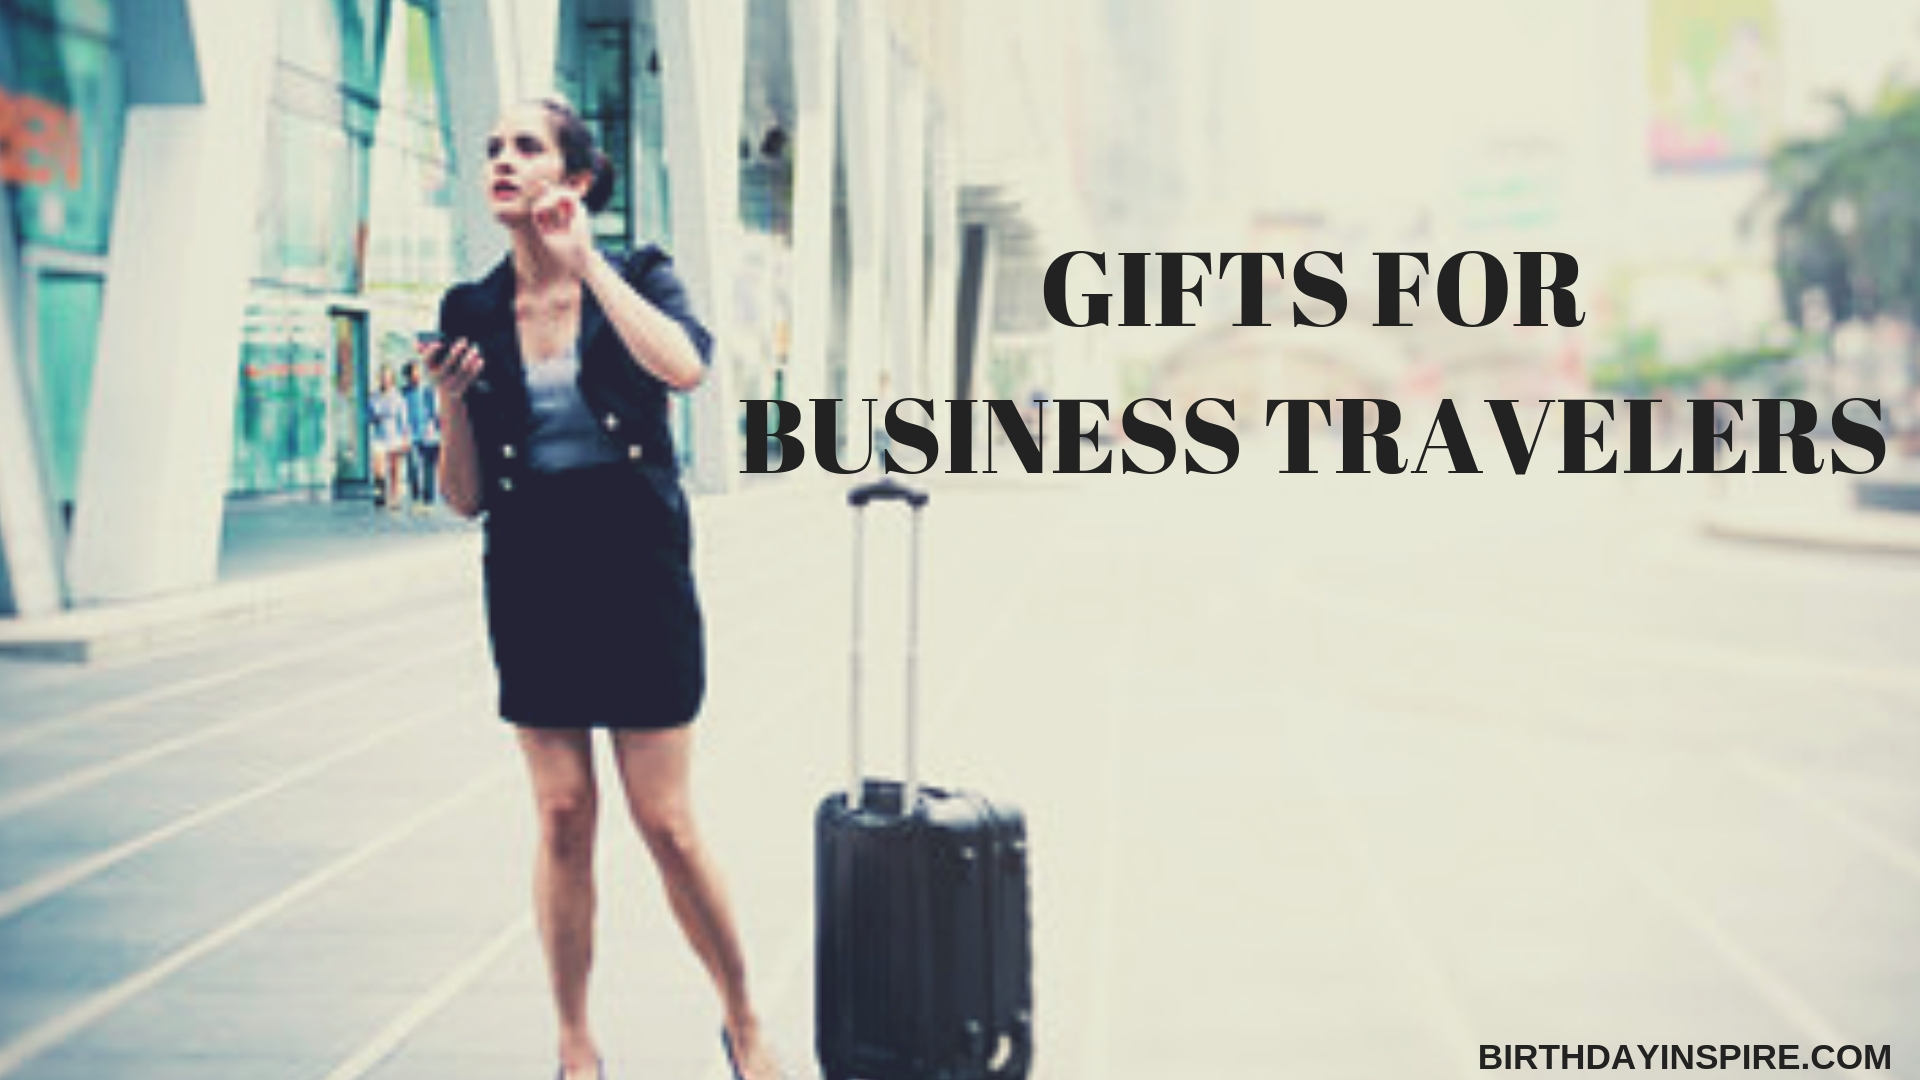 GIFTS FOR BUSINESS TRAVELERS